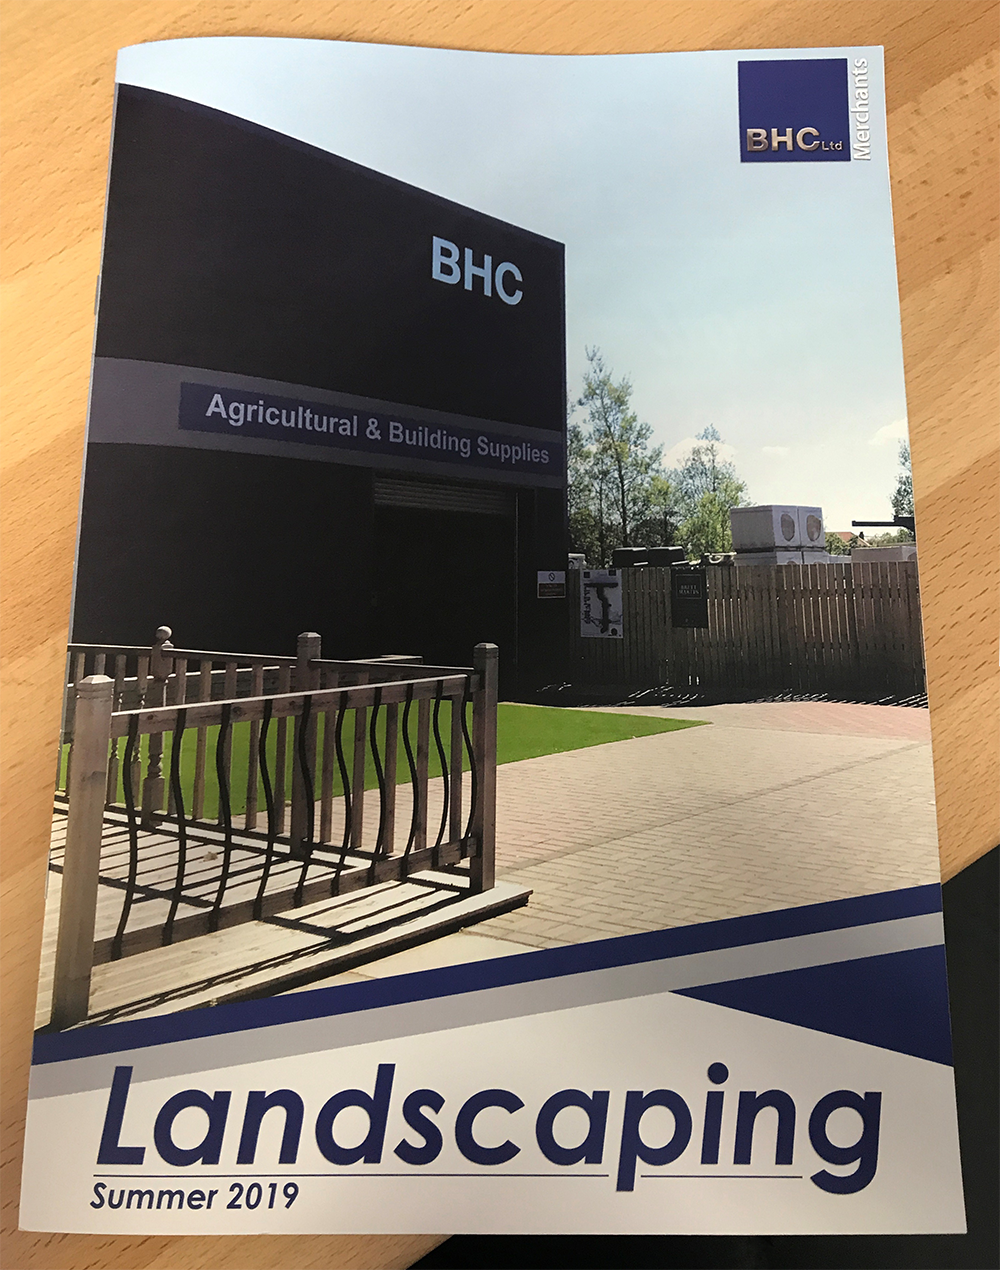 Landscaping Guide 2019